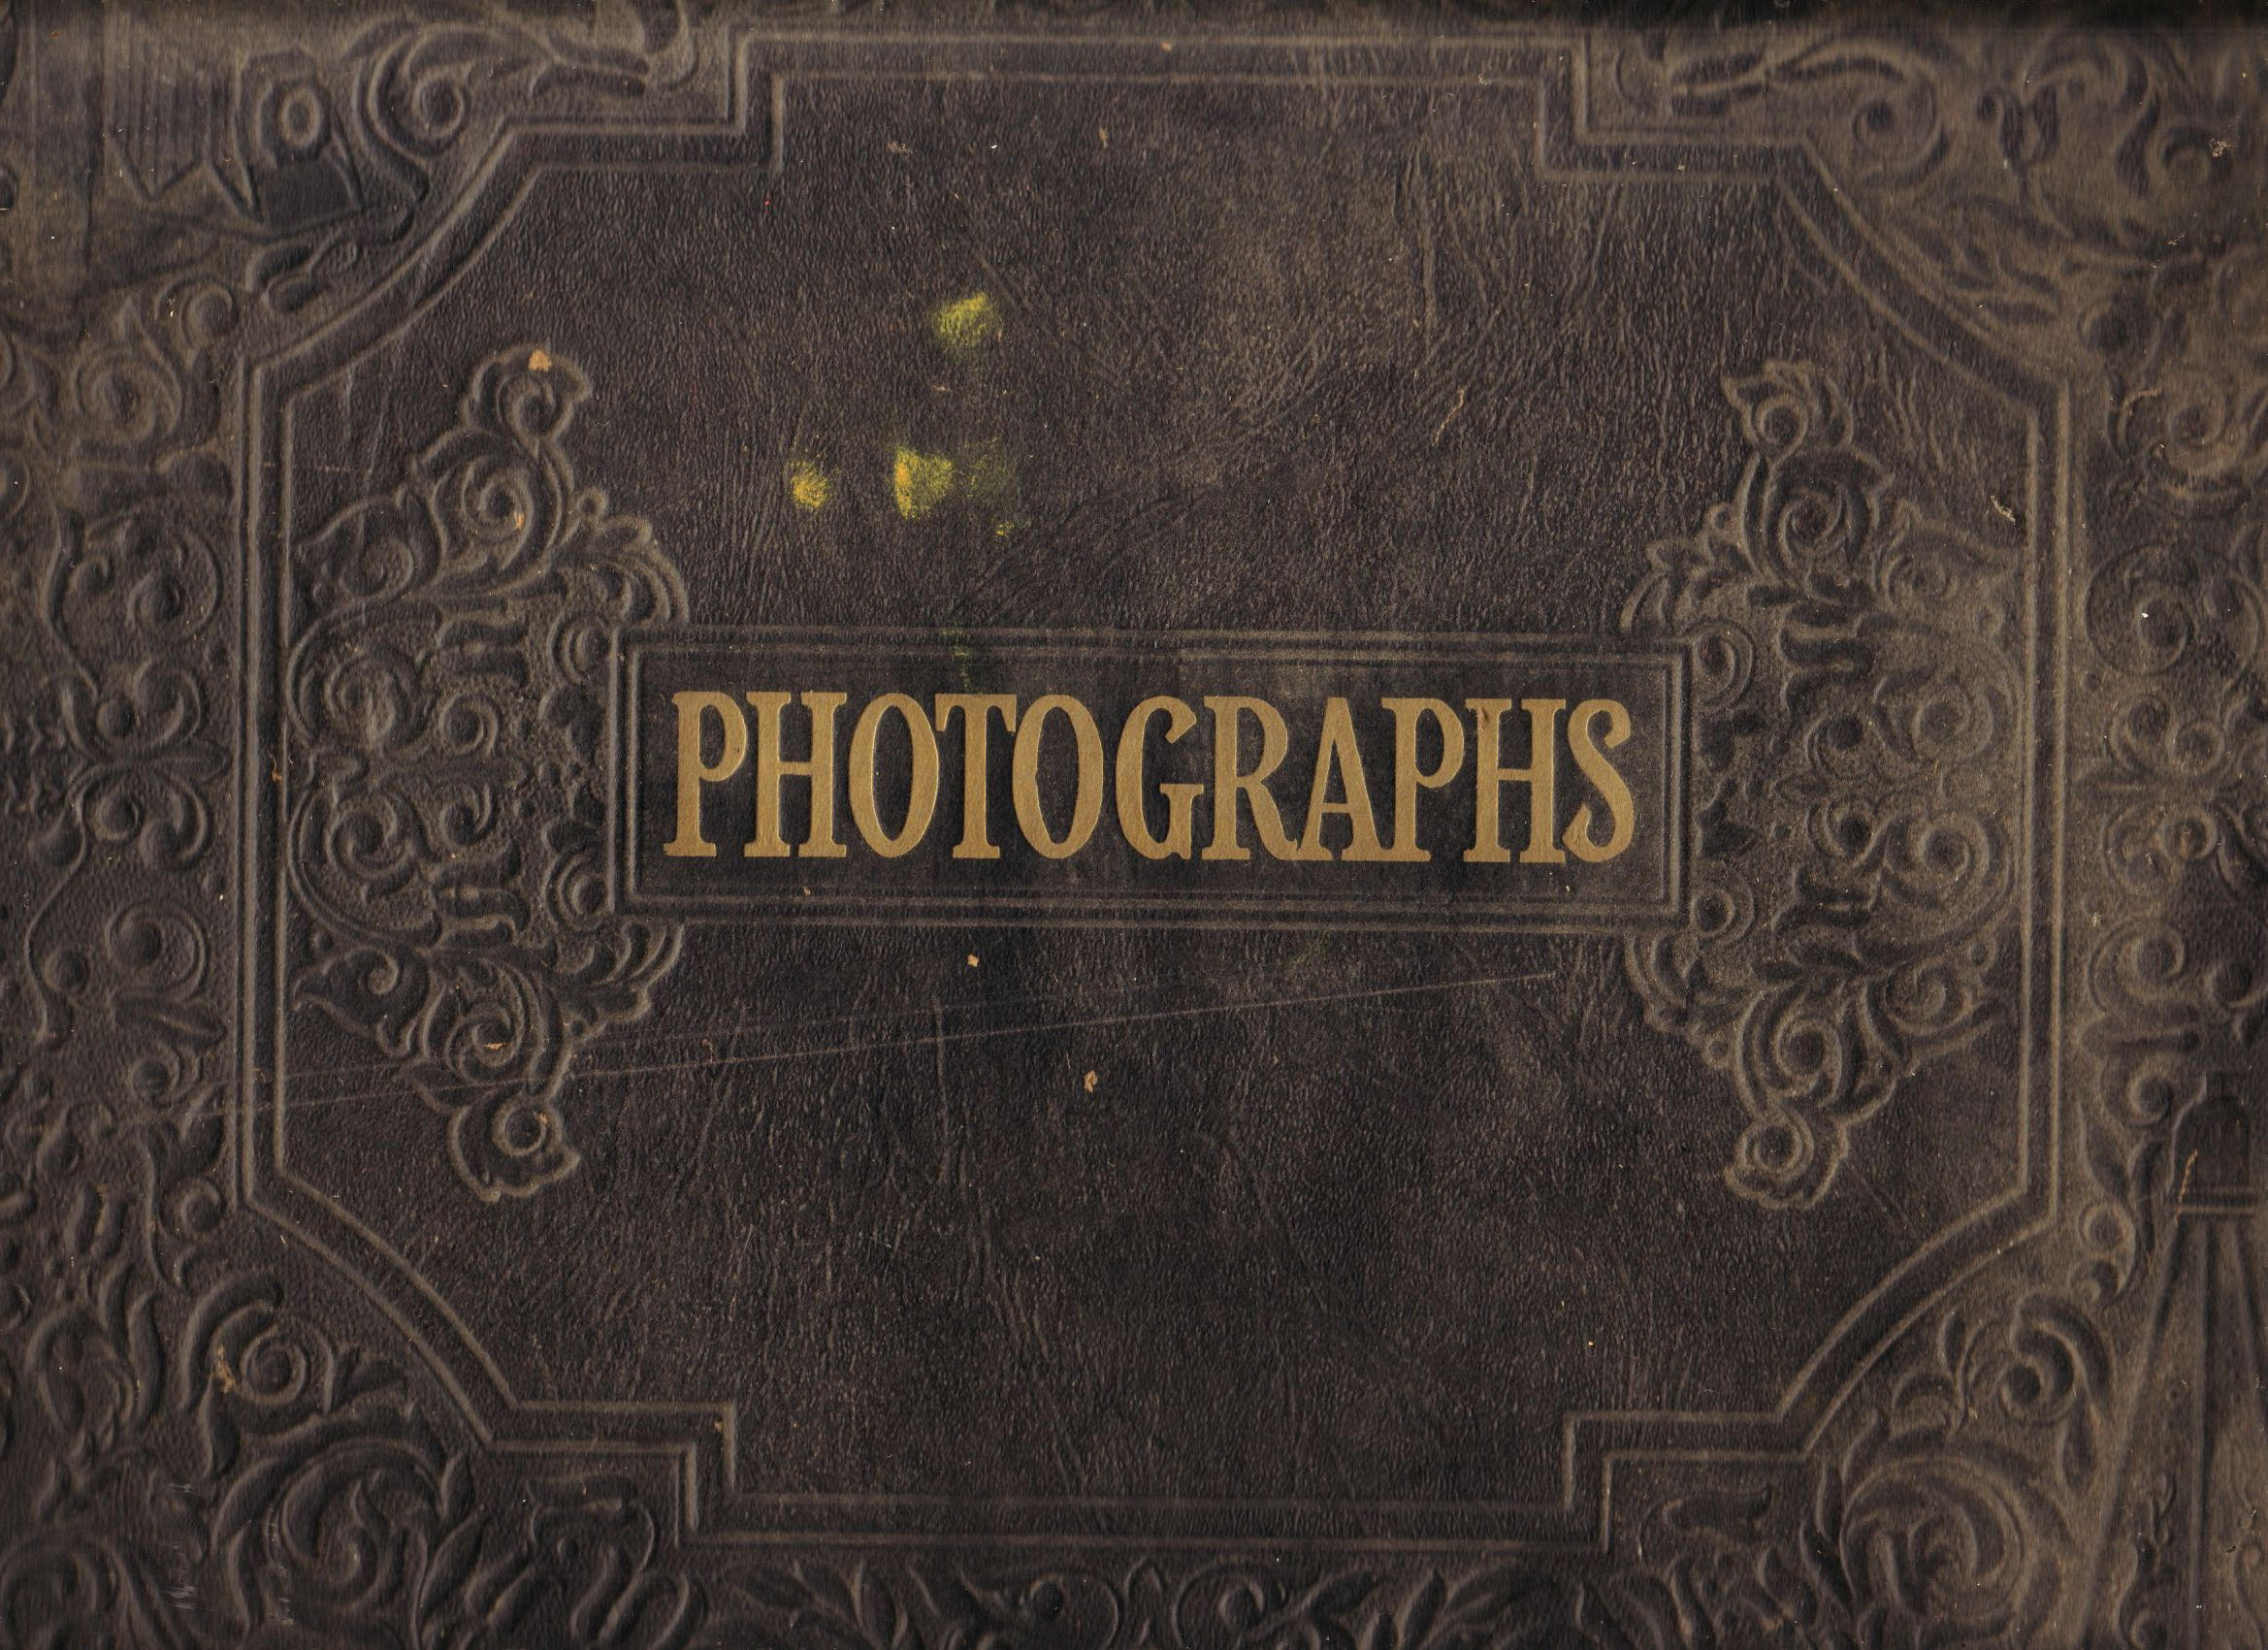 Brand new photographs album cover by lebstock on DeviantArt AS16